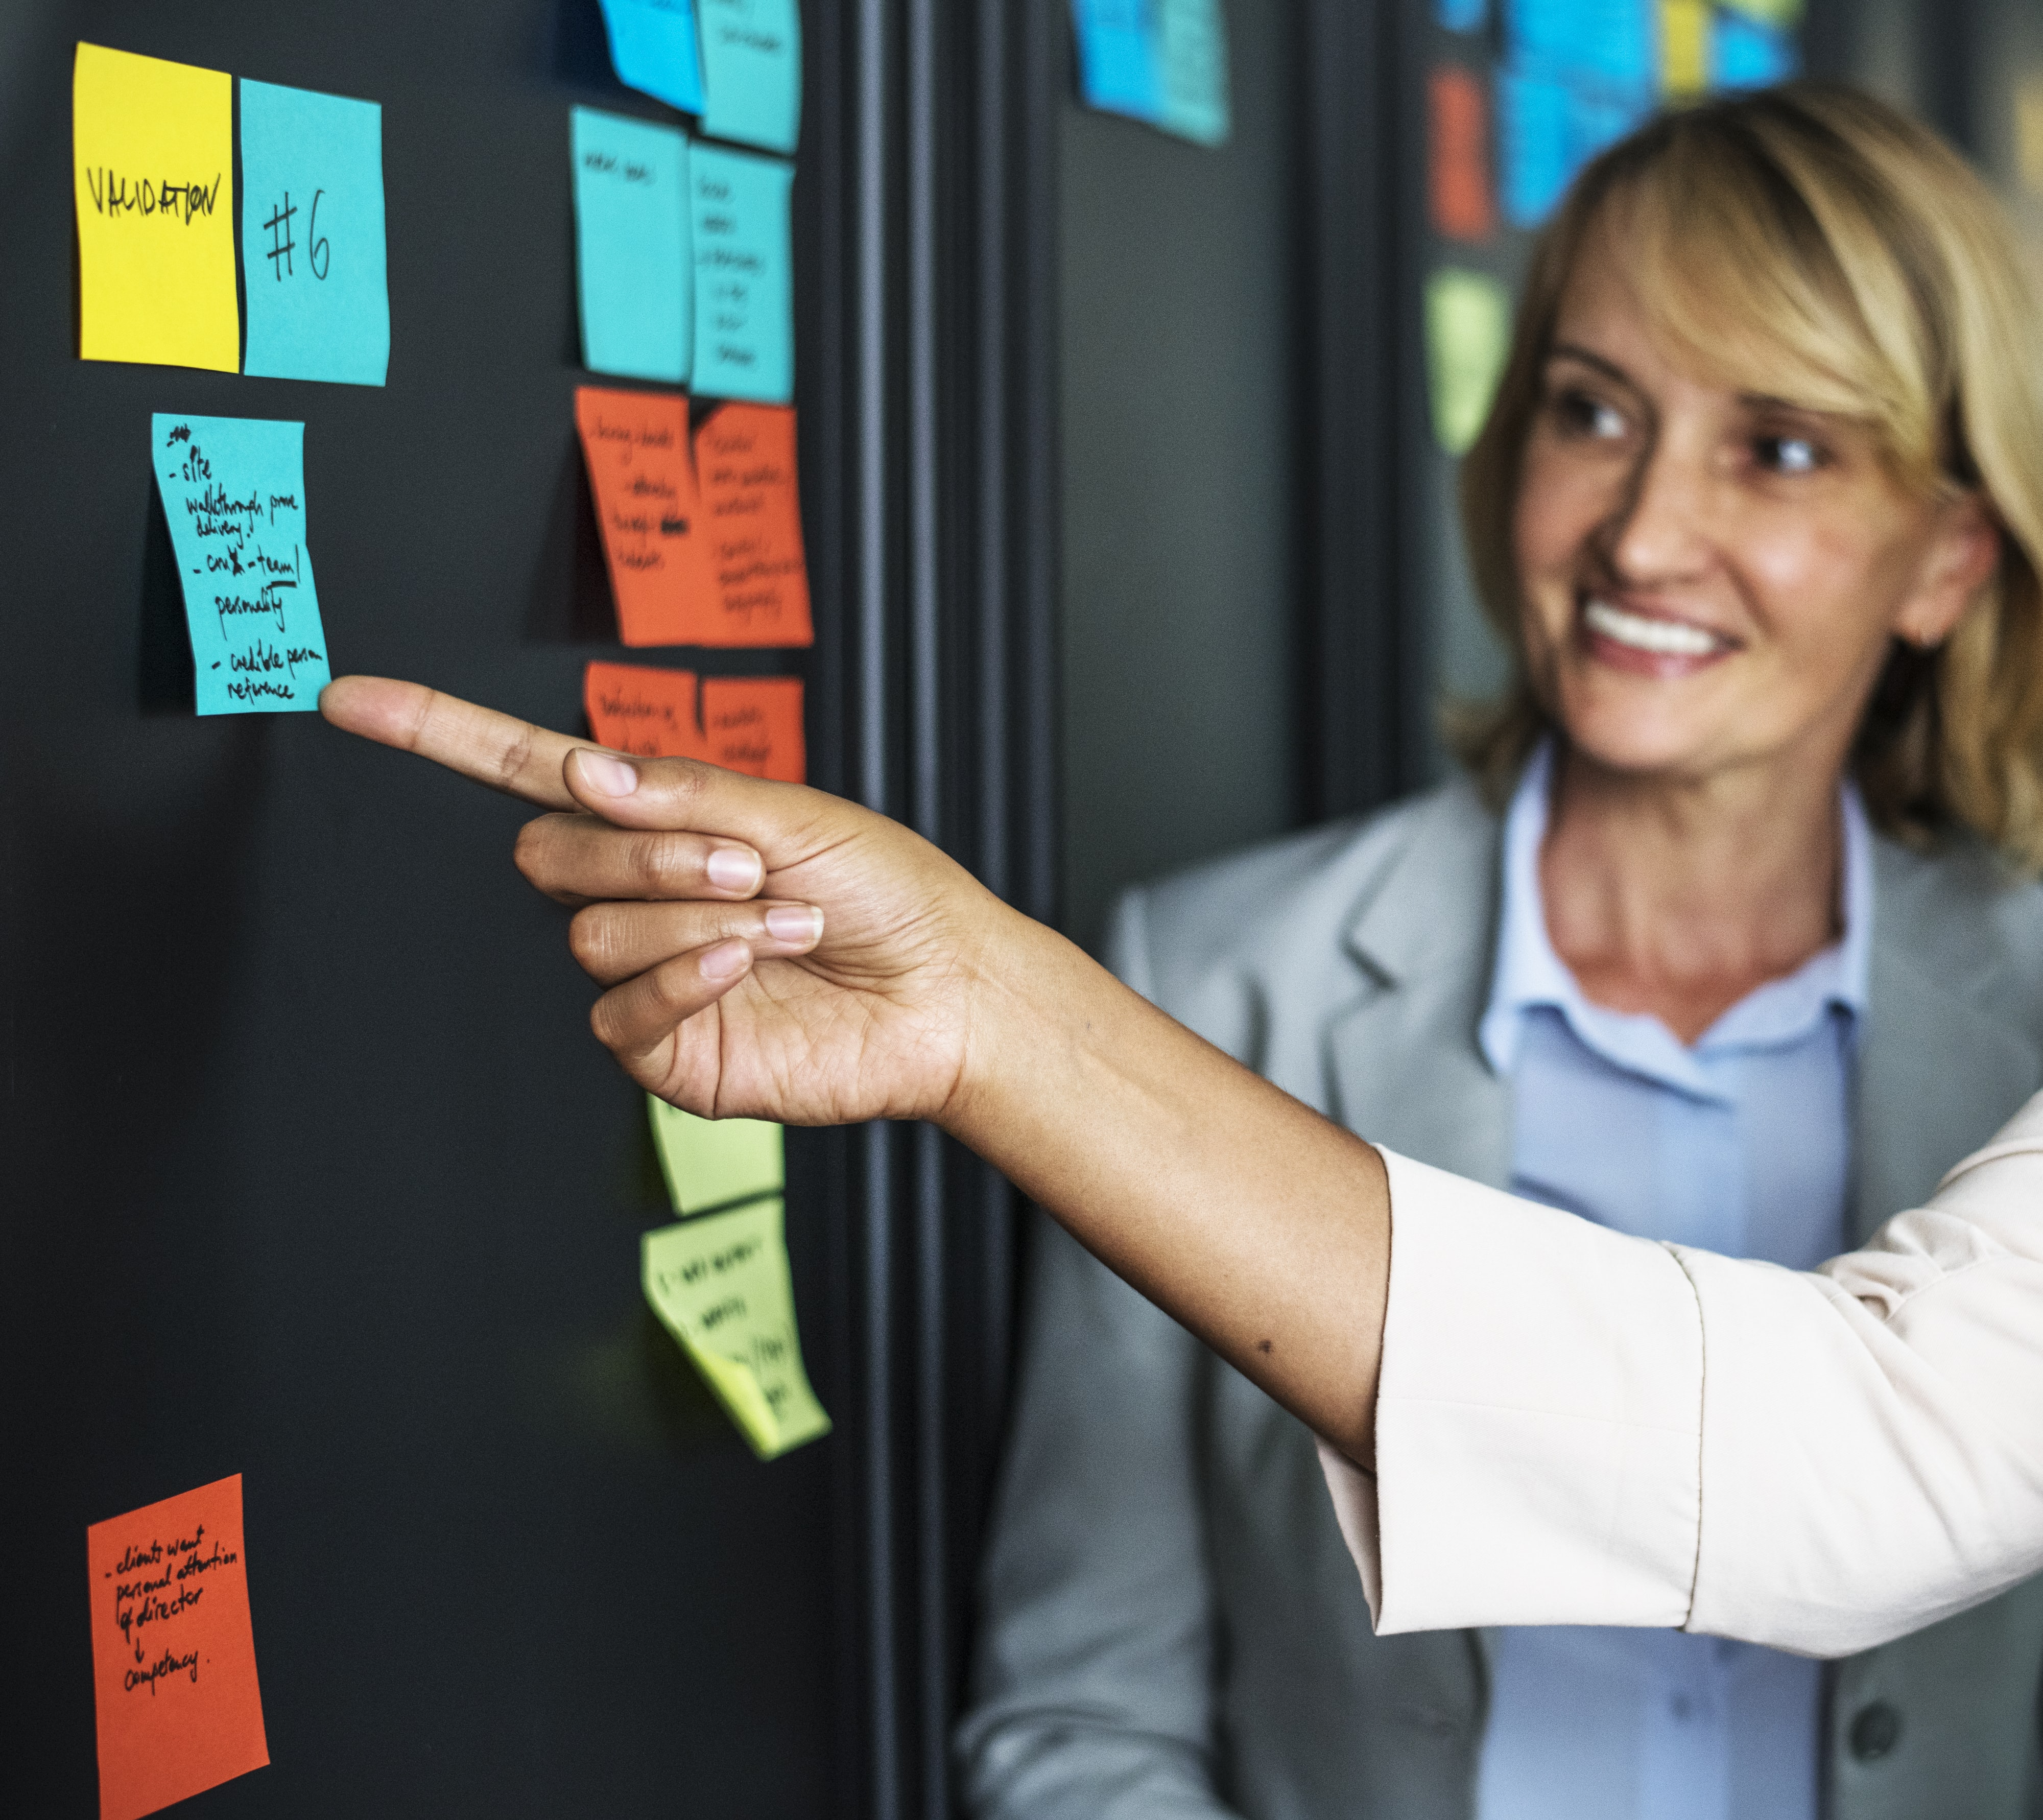 person pointing at blue sticky note on wall